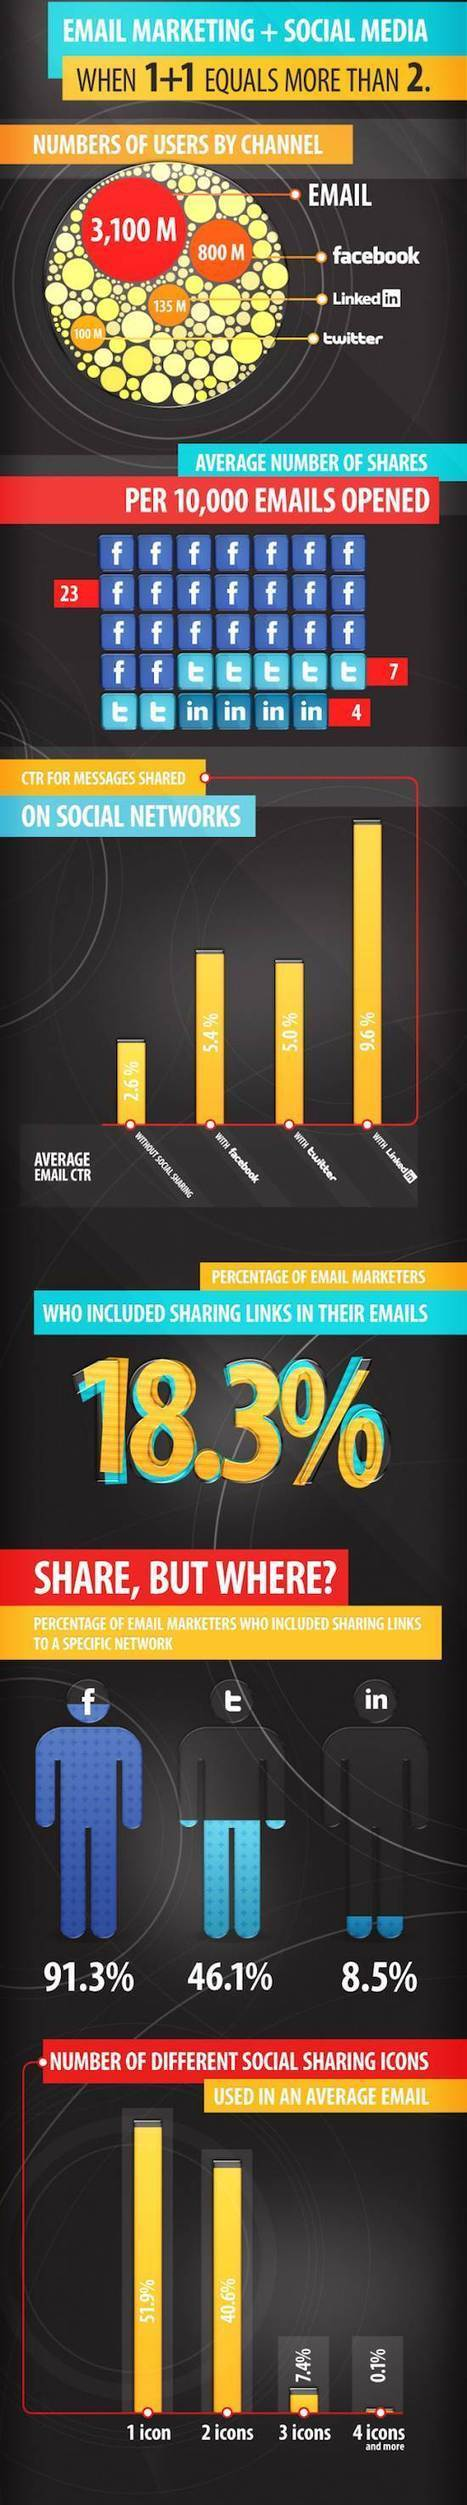 Social Sharing and Email Marketing - Infographic | Business and Social Networking | Scoop.it